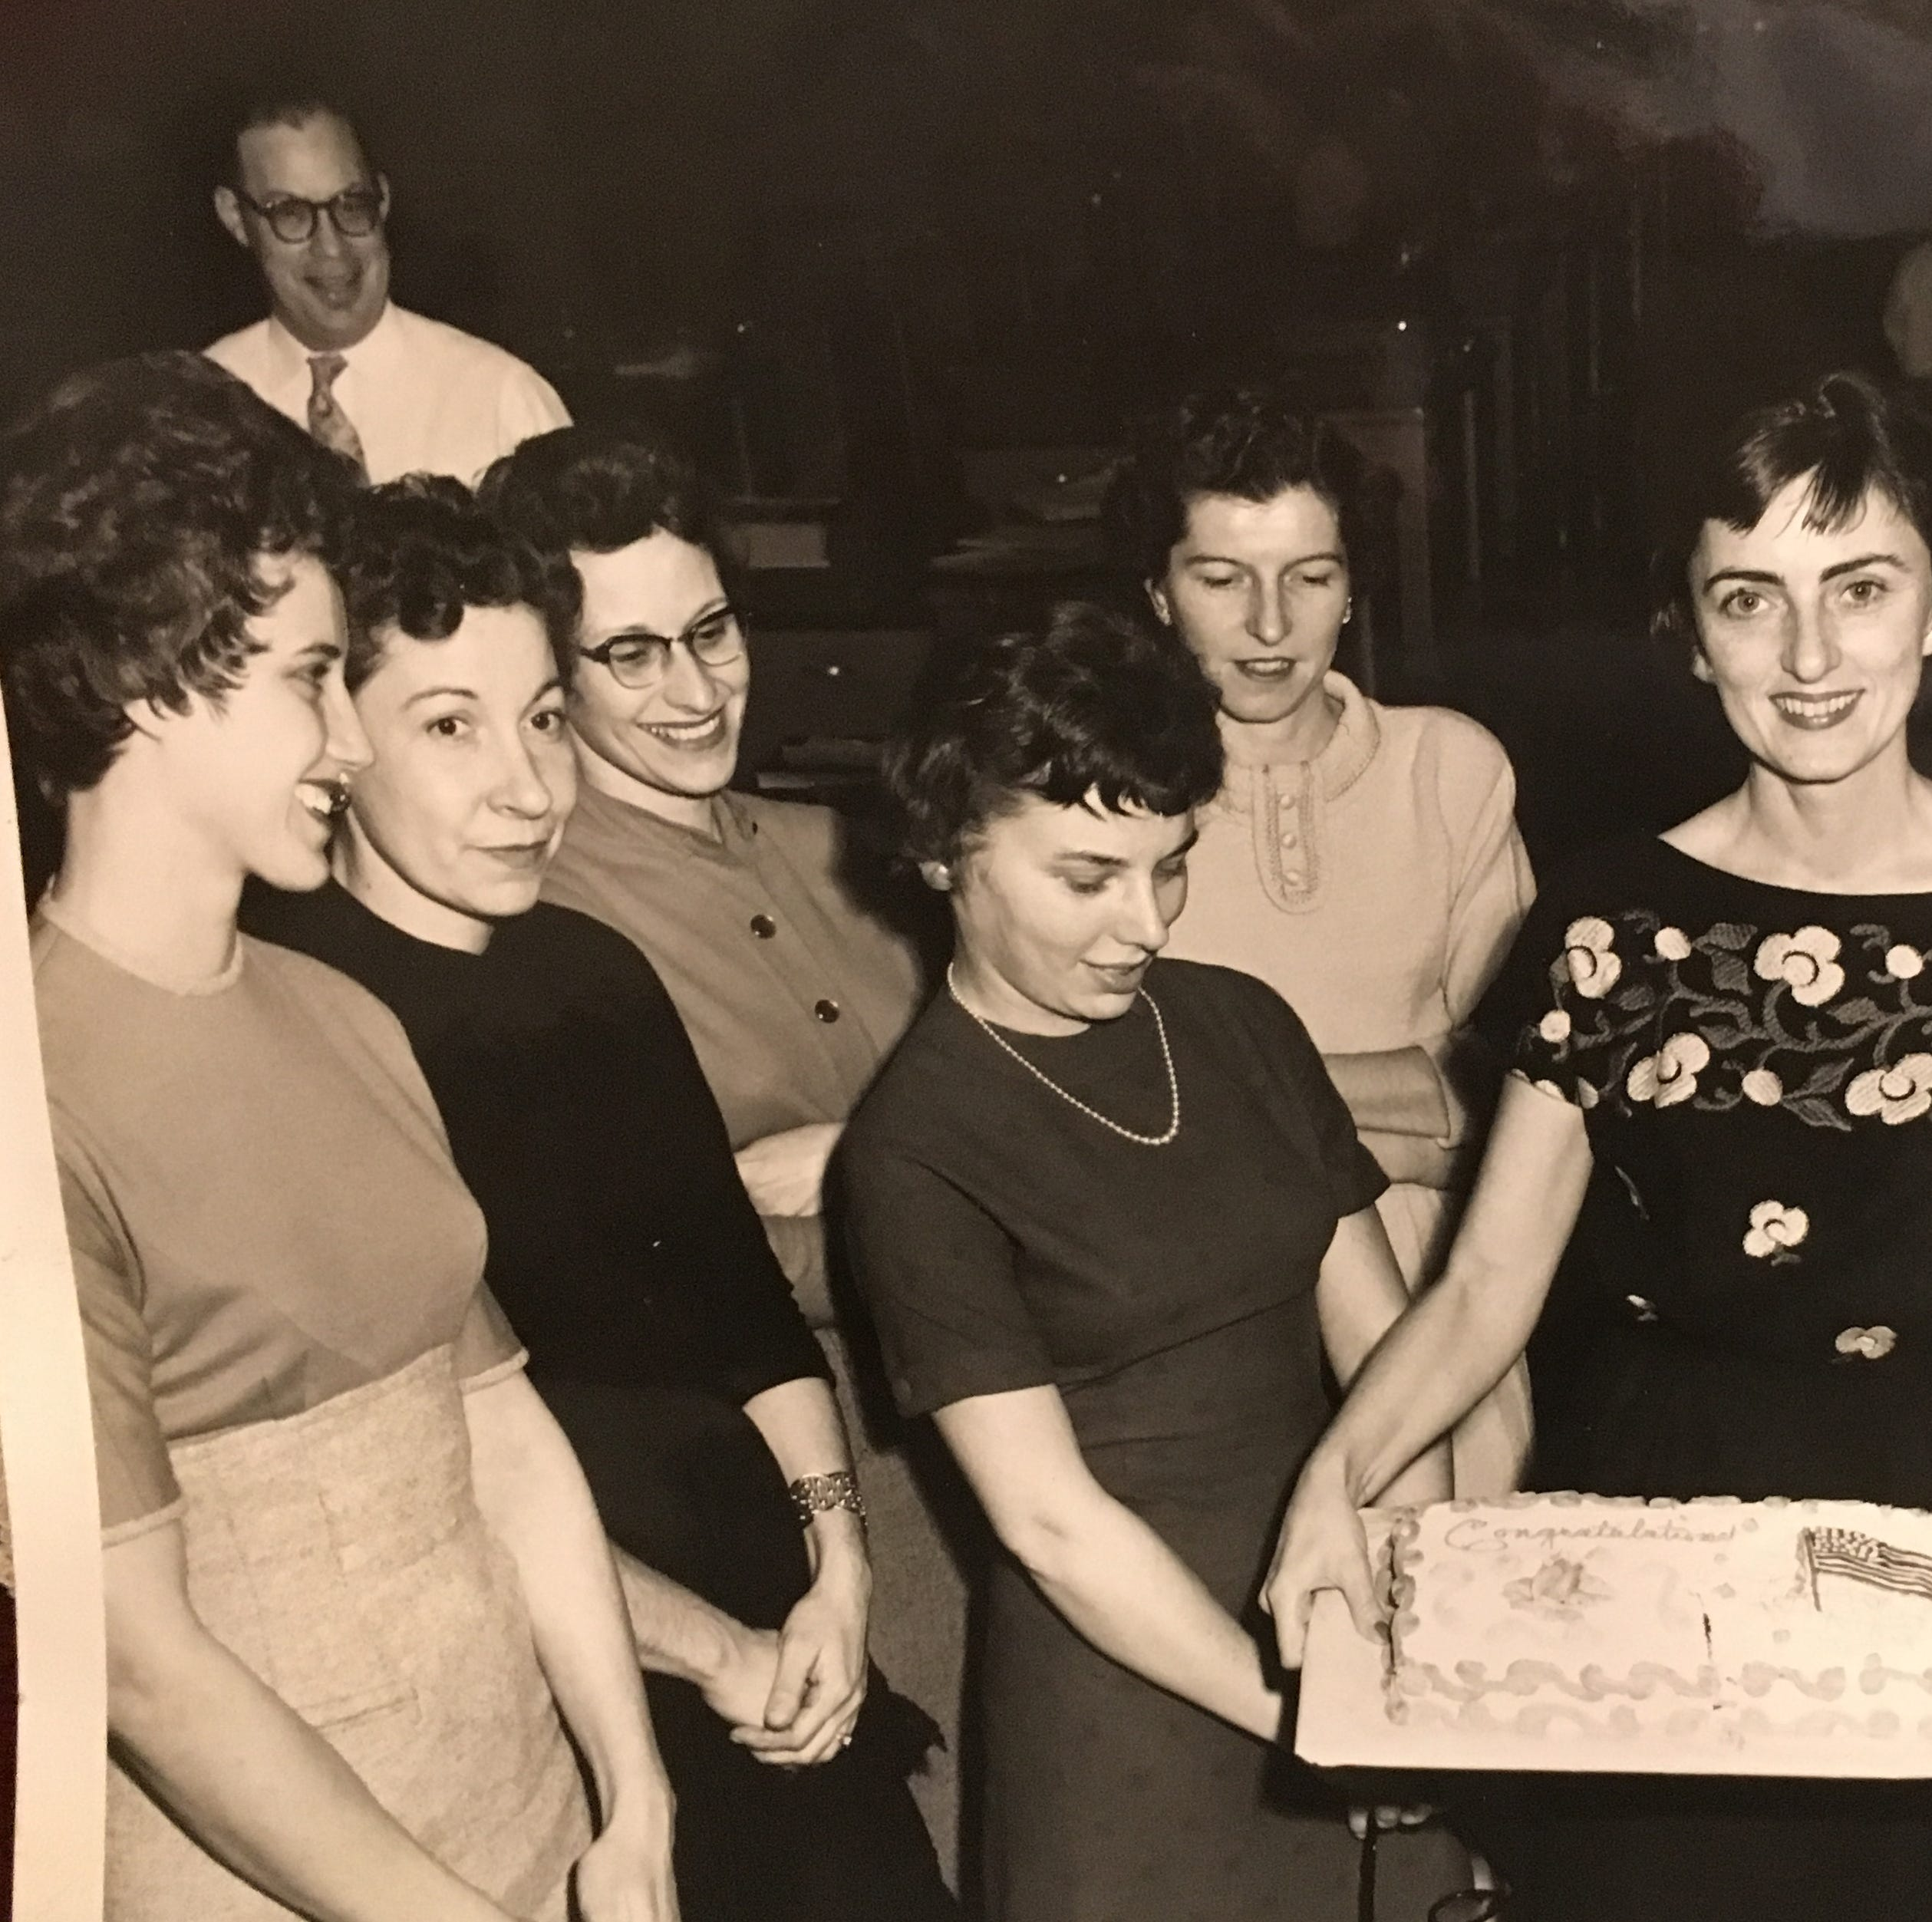 She came to America from Germany in the 1950s, and found a home at the York YWCA